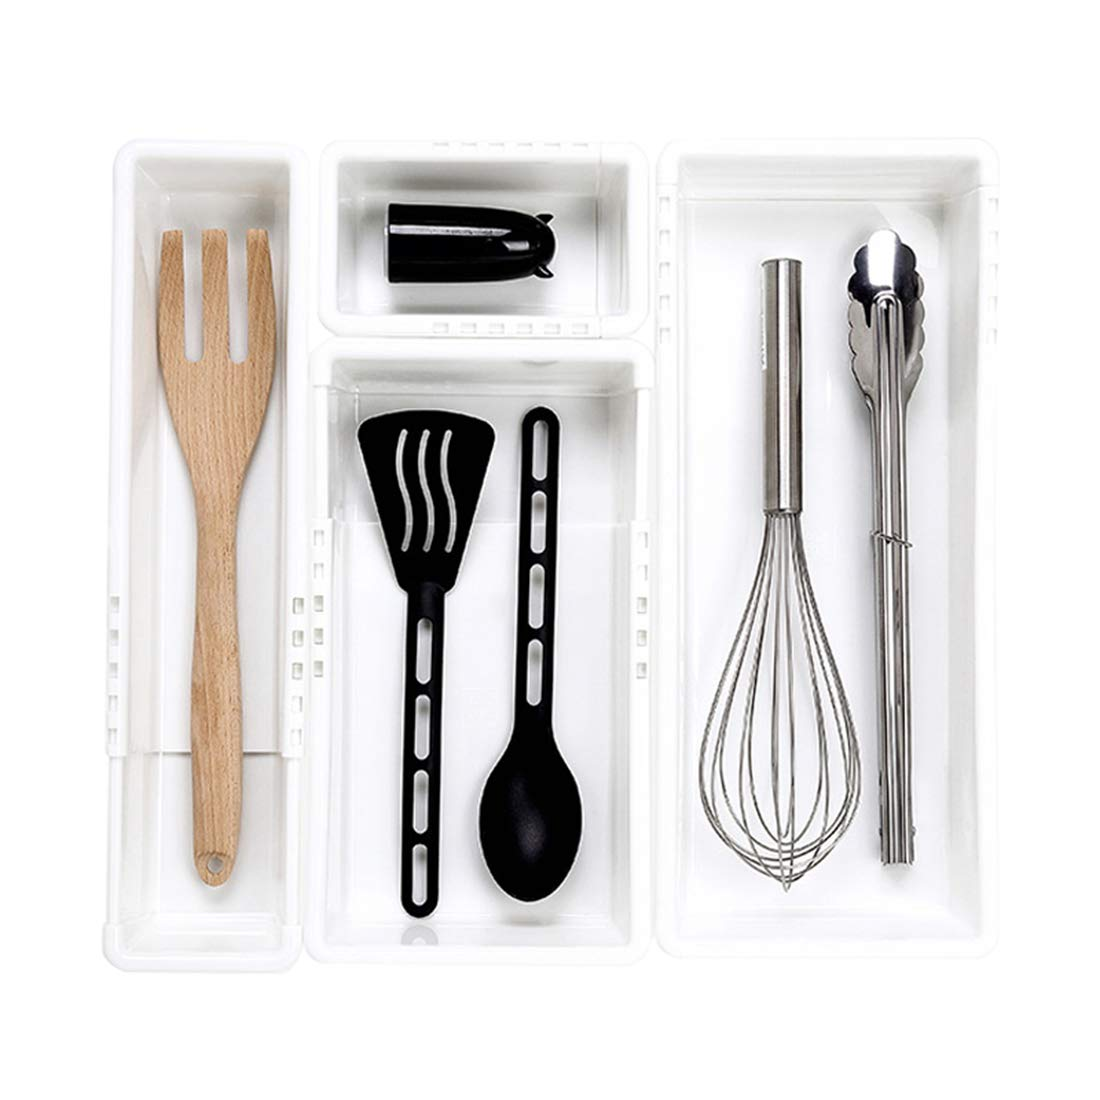 SHOW-WF Plastic Cutlery Tray for Kitchen Drawers Insert Various Extendable Sizes Compartment Utensil Holder,for Cutlery/Craft Supplies/Jewellery,Combination1